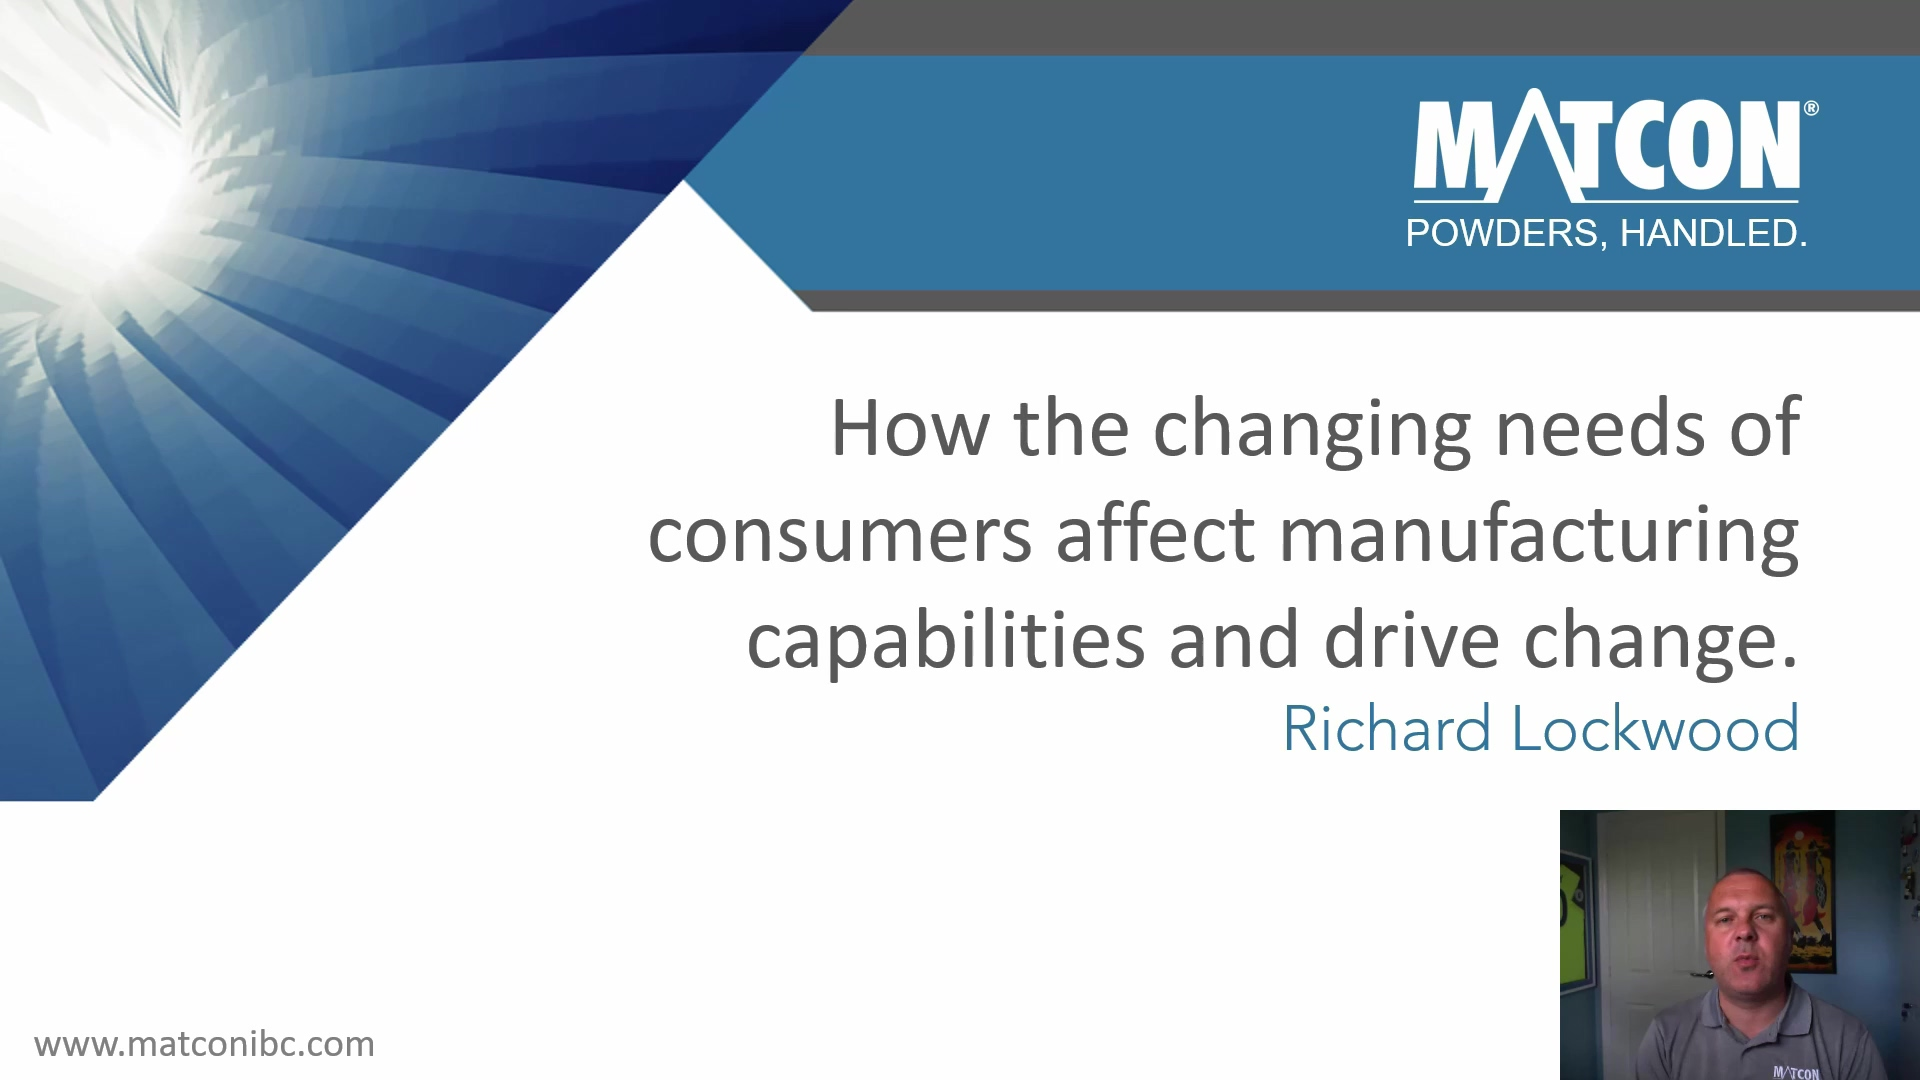 How the changing needs of consumers affect manufacturers